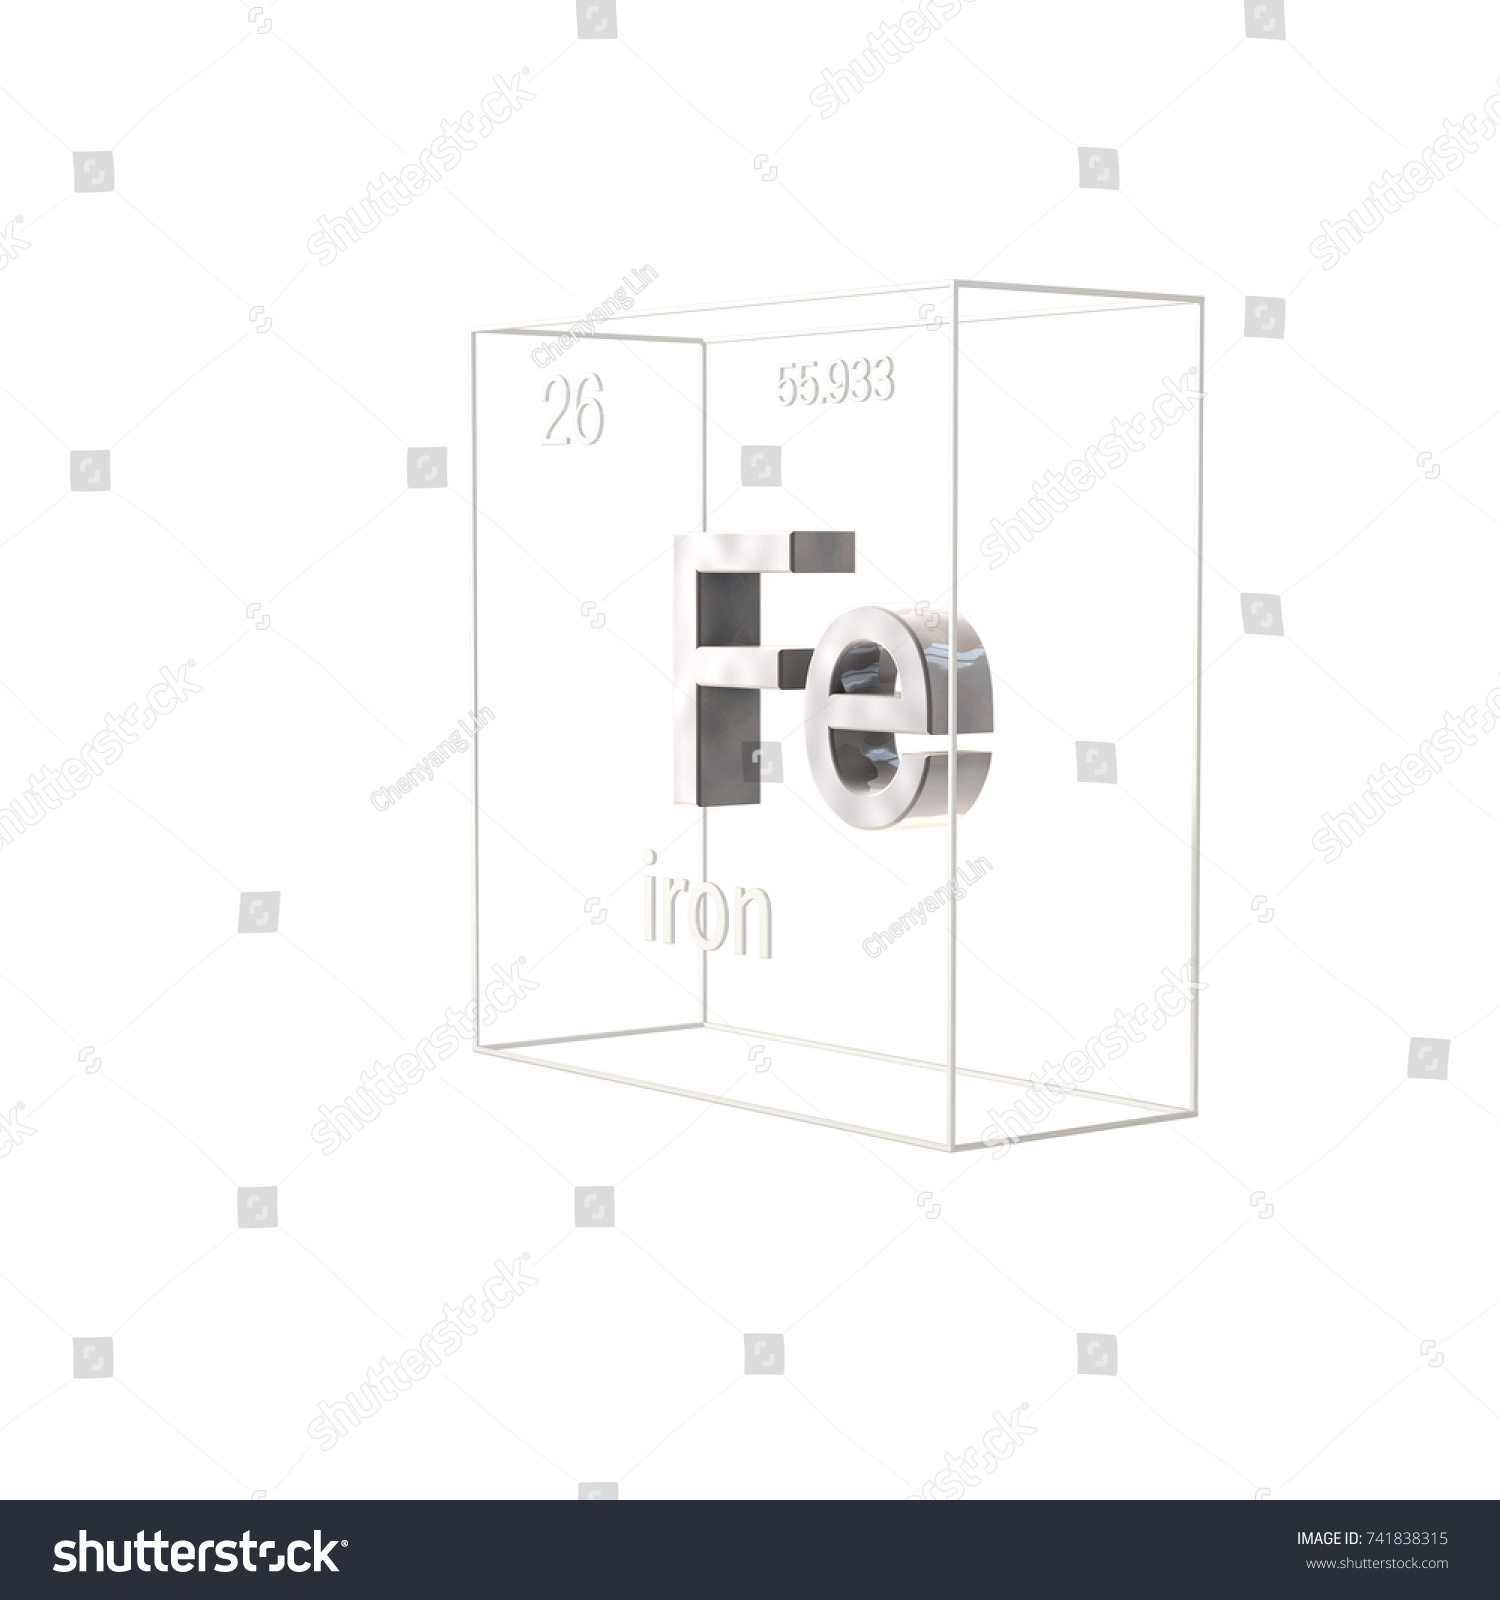 Iron chemical element atomic number atomic stock illustration iron chemical element atomic number and atomic weight chemical element of periodic table urtaz Gallery